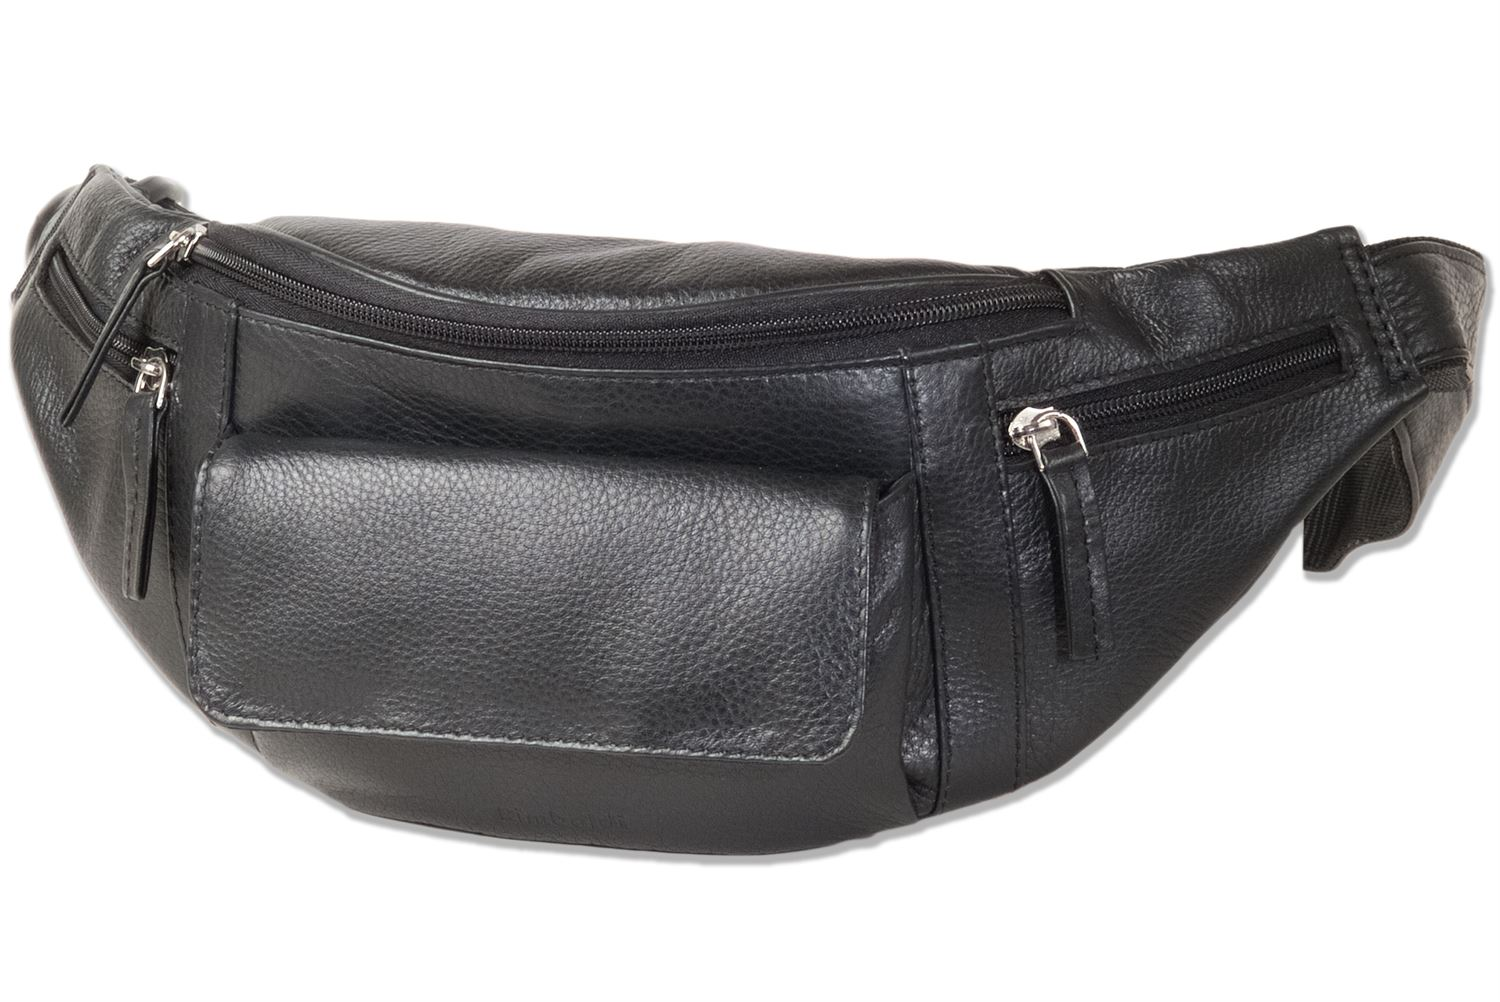 49c9decdbcc Rimbaldi® Large belt bag with plenty of space made of soft